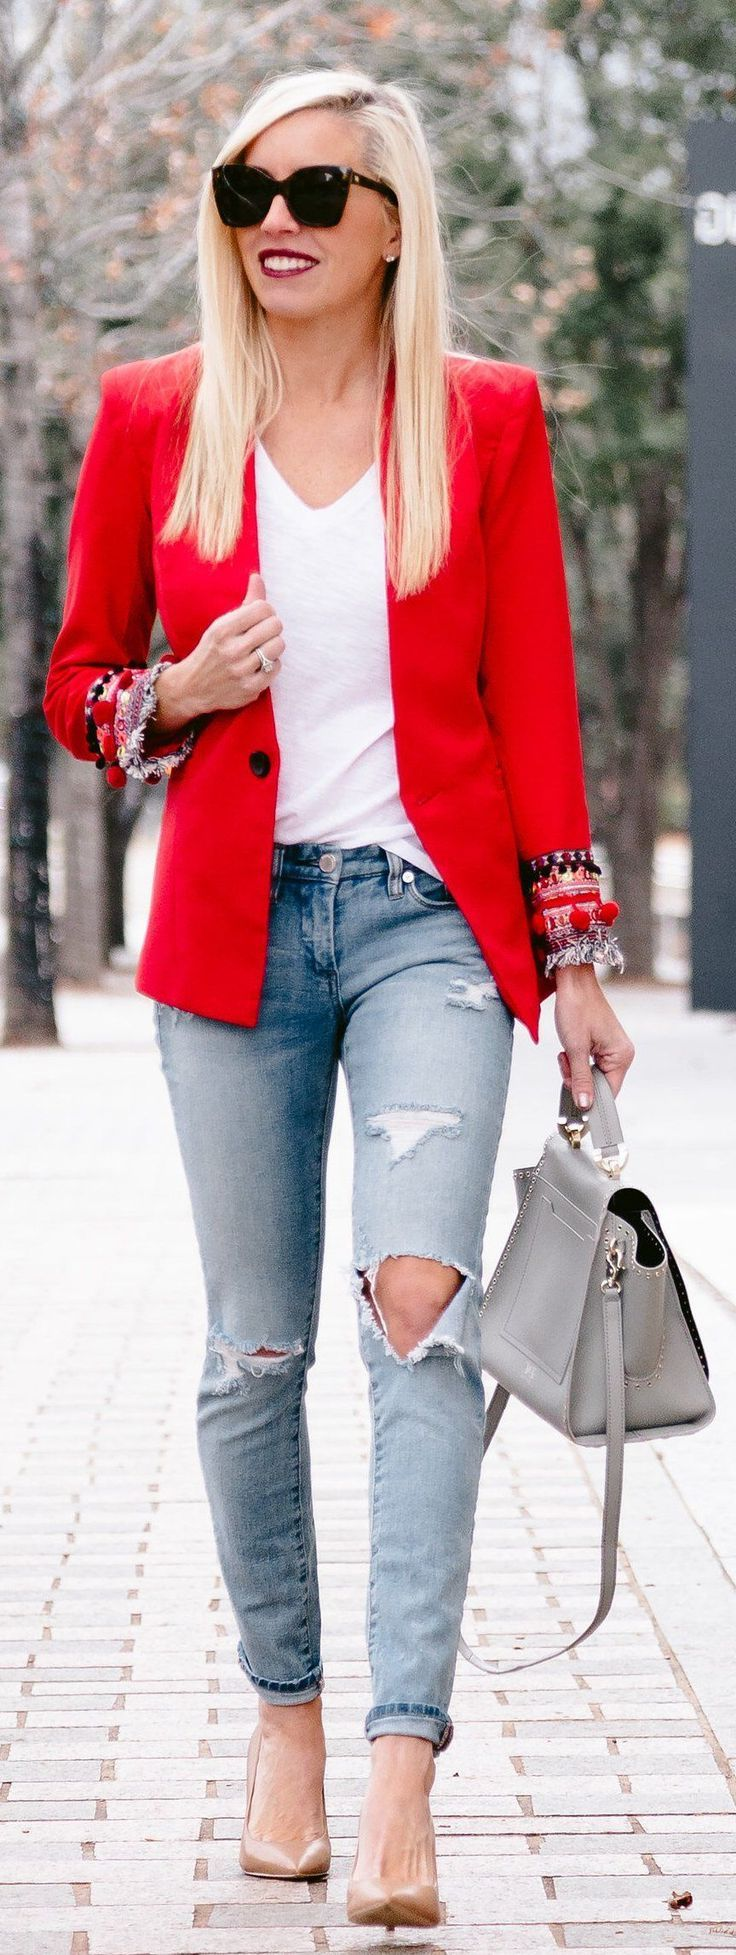 Blazers Outfit Ideas For Women 2019